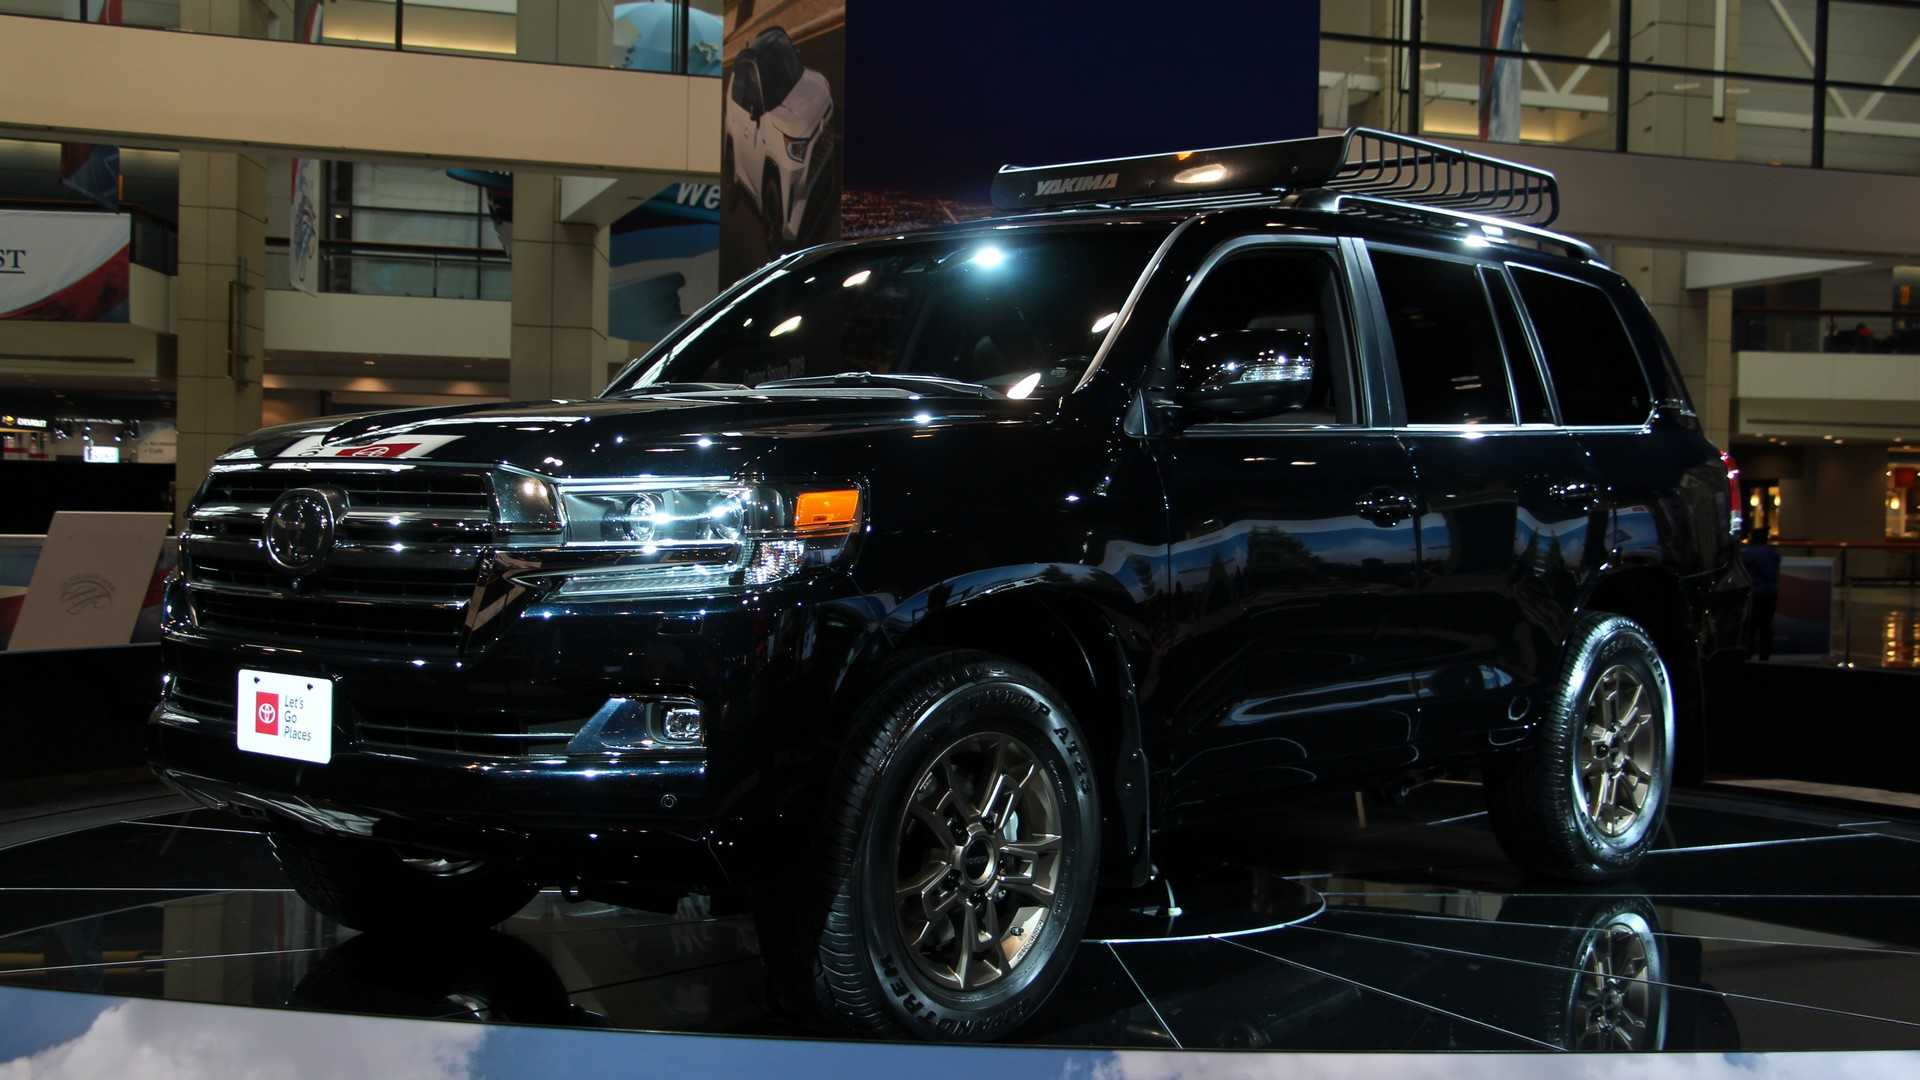 52 The Best Toyota New Land Cruiser 2020 Price Design And Review